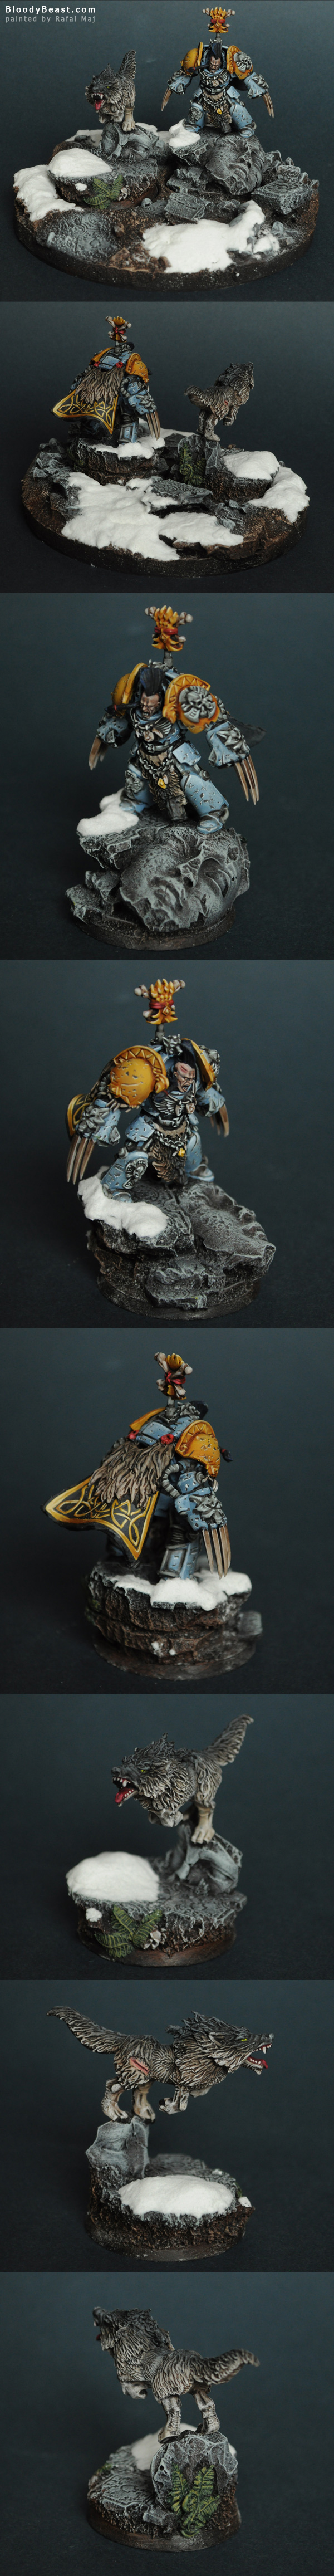 Space Wolf Lord painted by Rafal Maj (BloodyBeast.com)